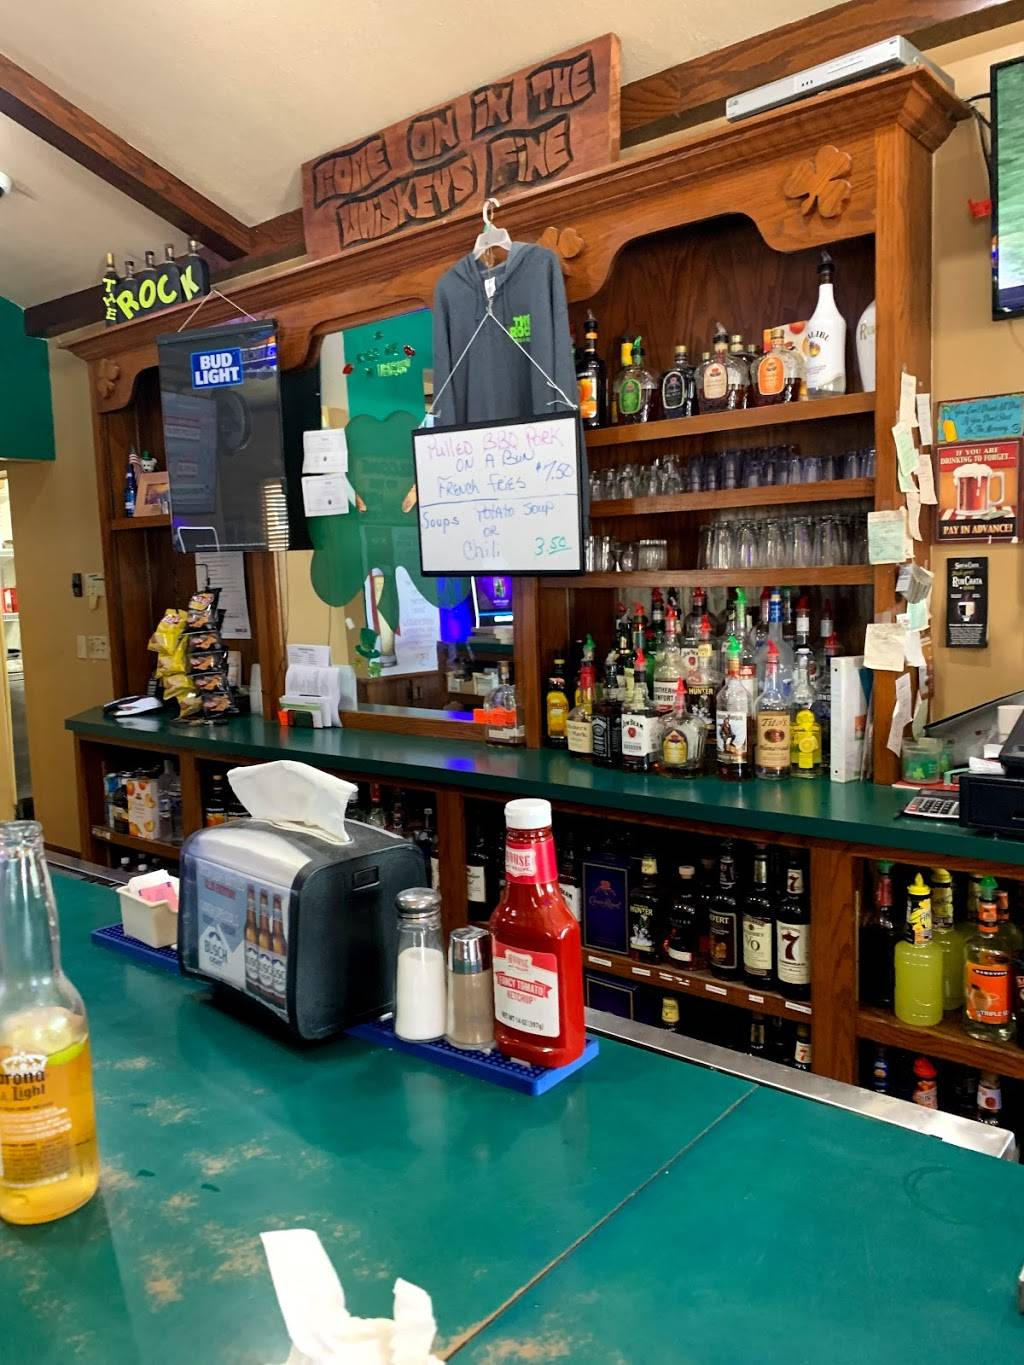 The Rock Bar and Grill   restaurant   4997 IN-56, Jasper, IN 47546, USA   8124827557 OR +1 812-482-7557